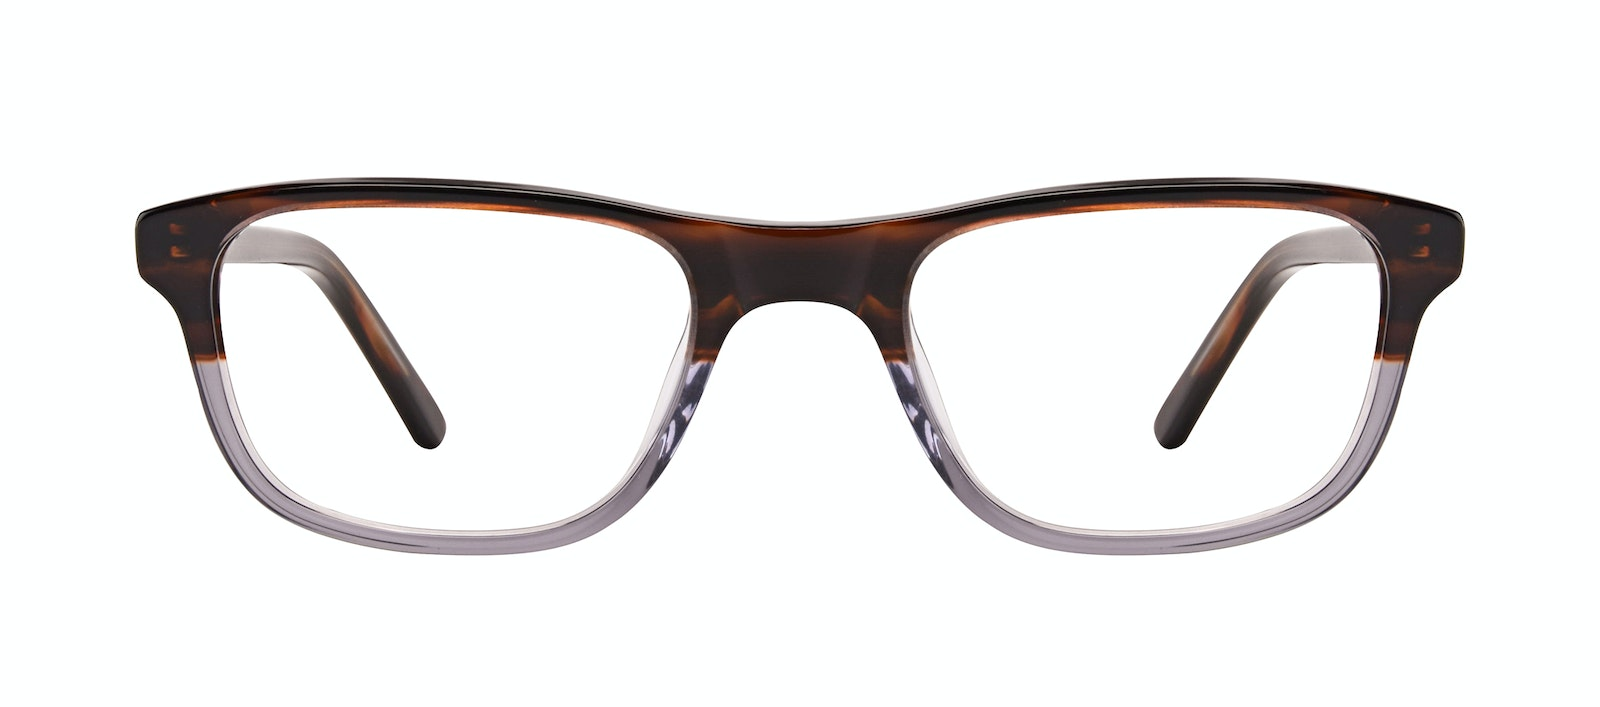 Affordable Fashion Glasses Rectangle Eyeglasses Men Neat Storm Front